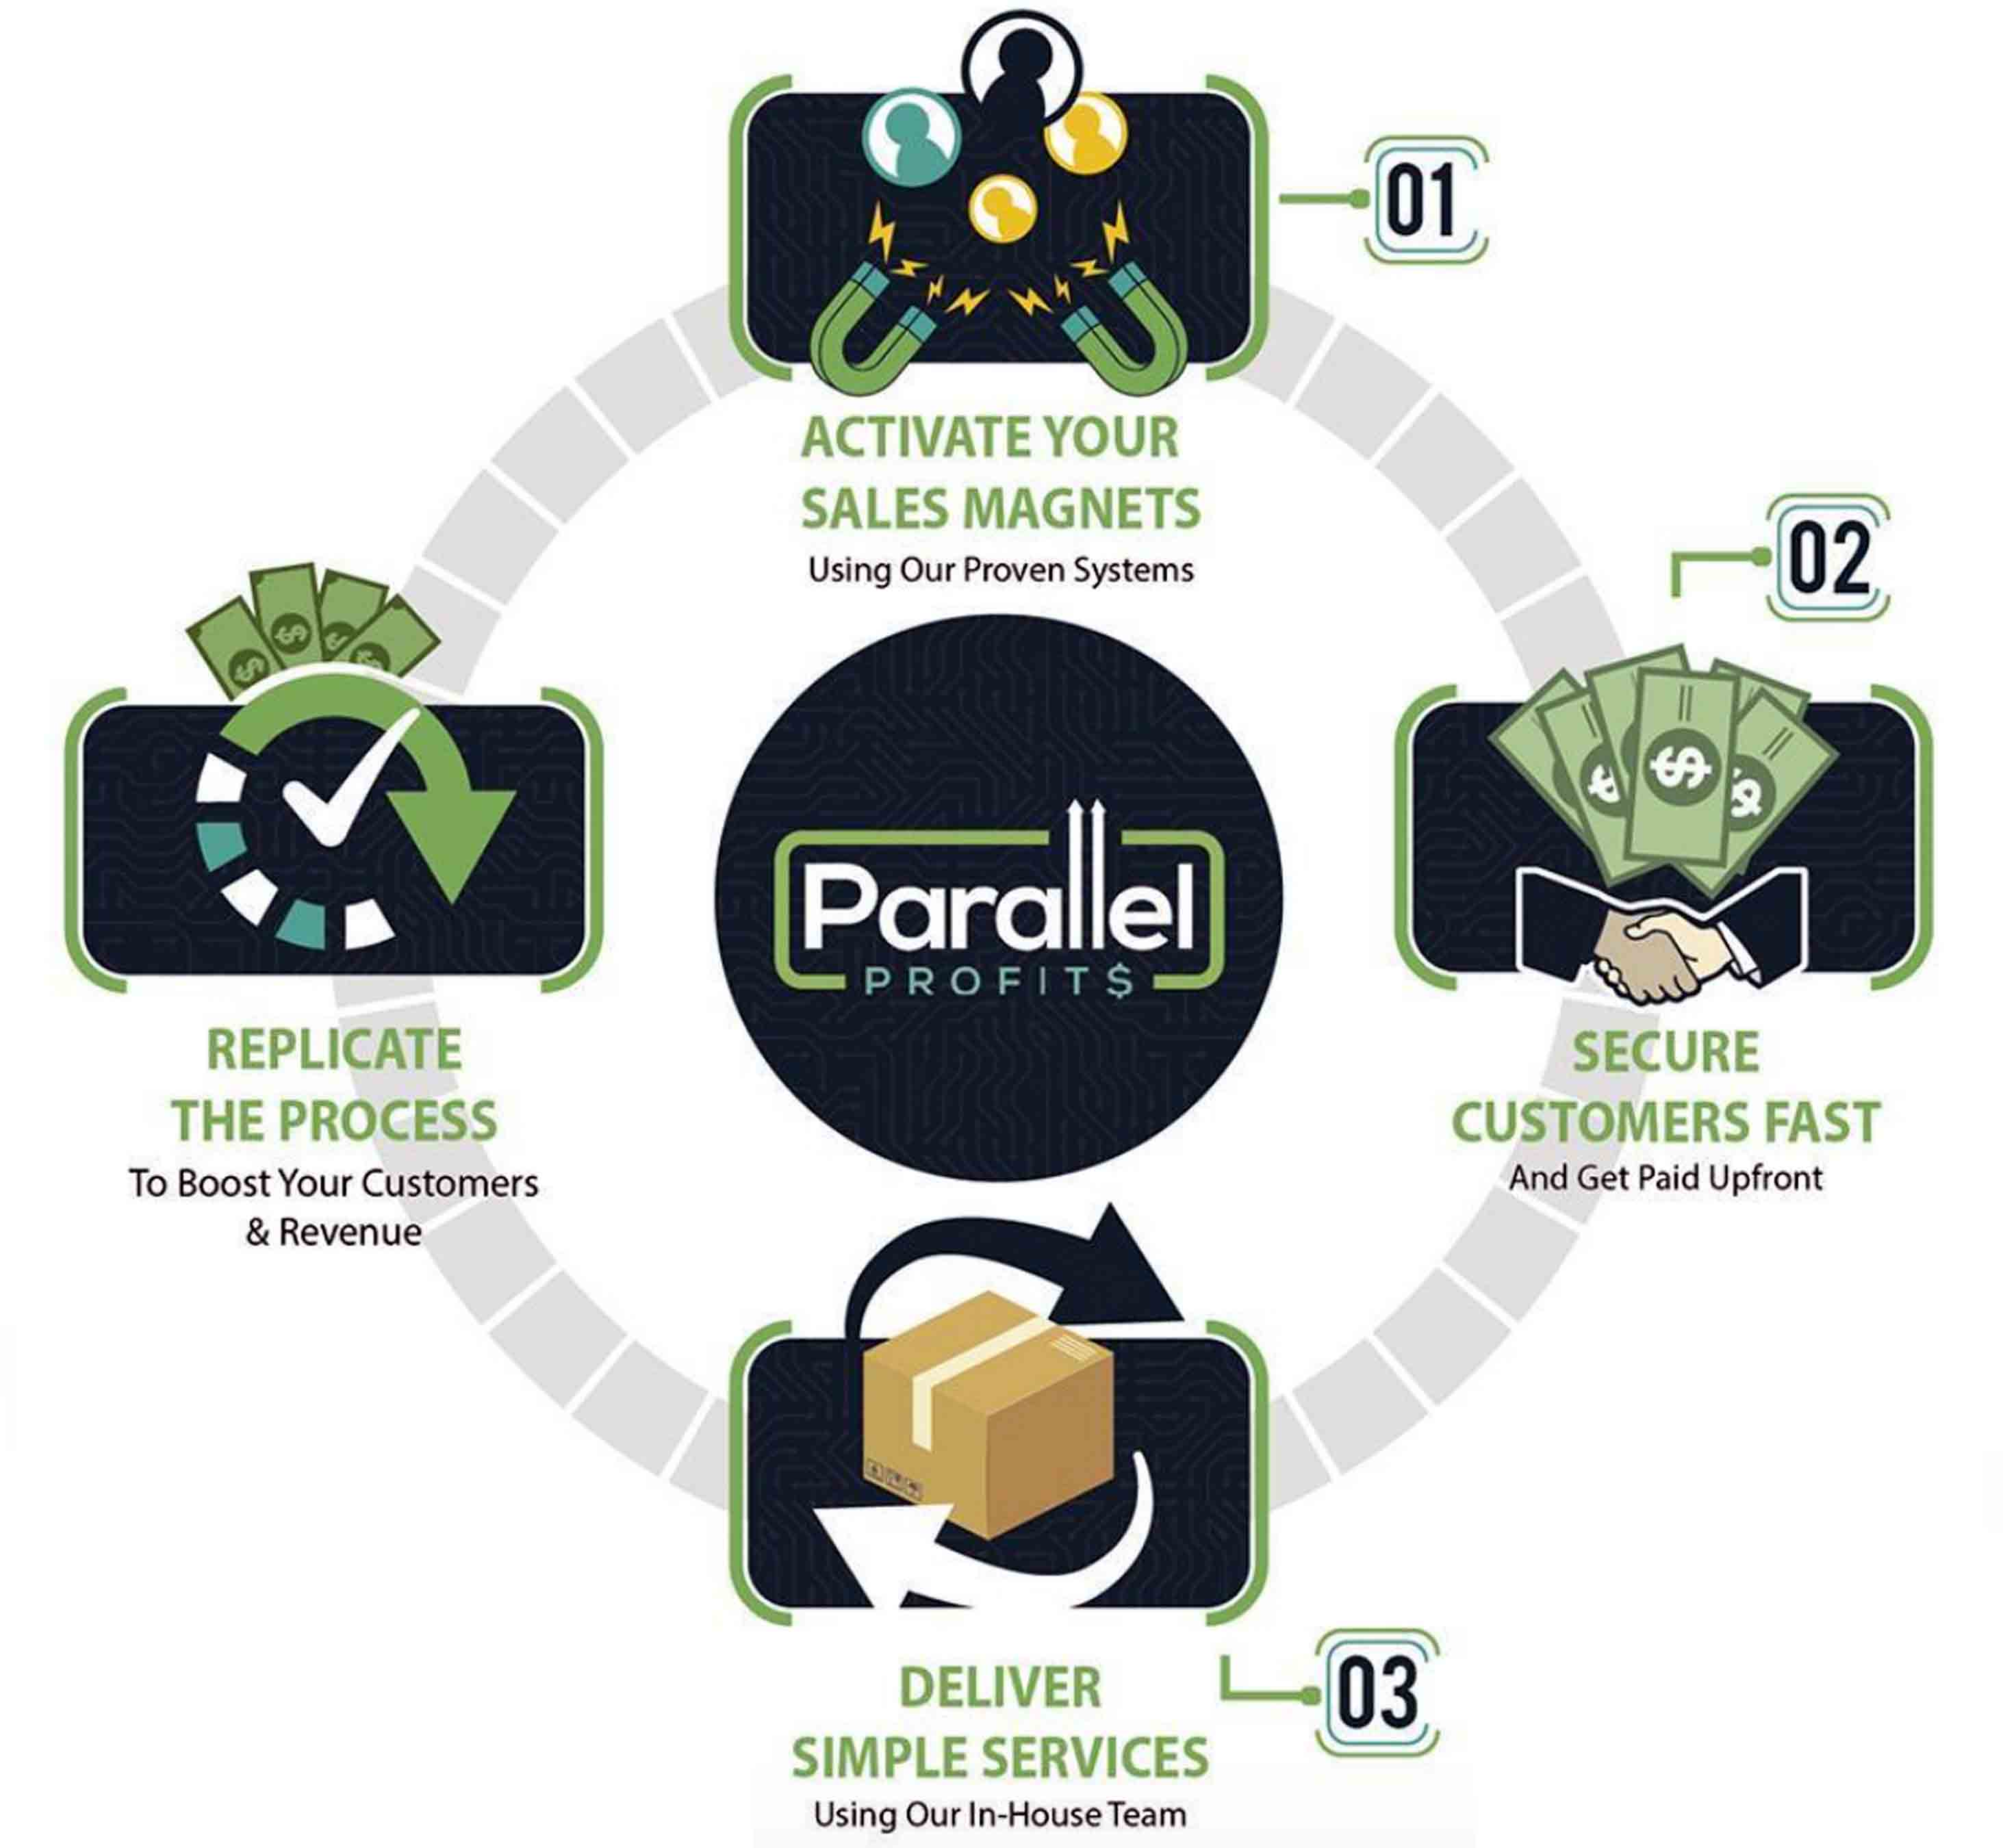 Is Parallel Profits a worth program?